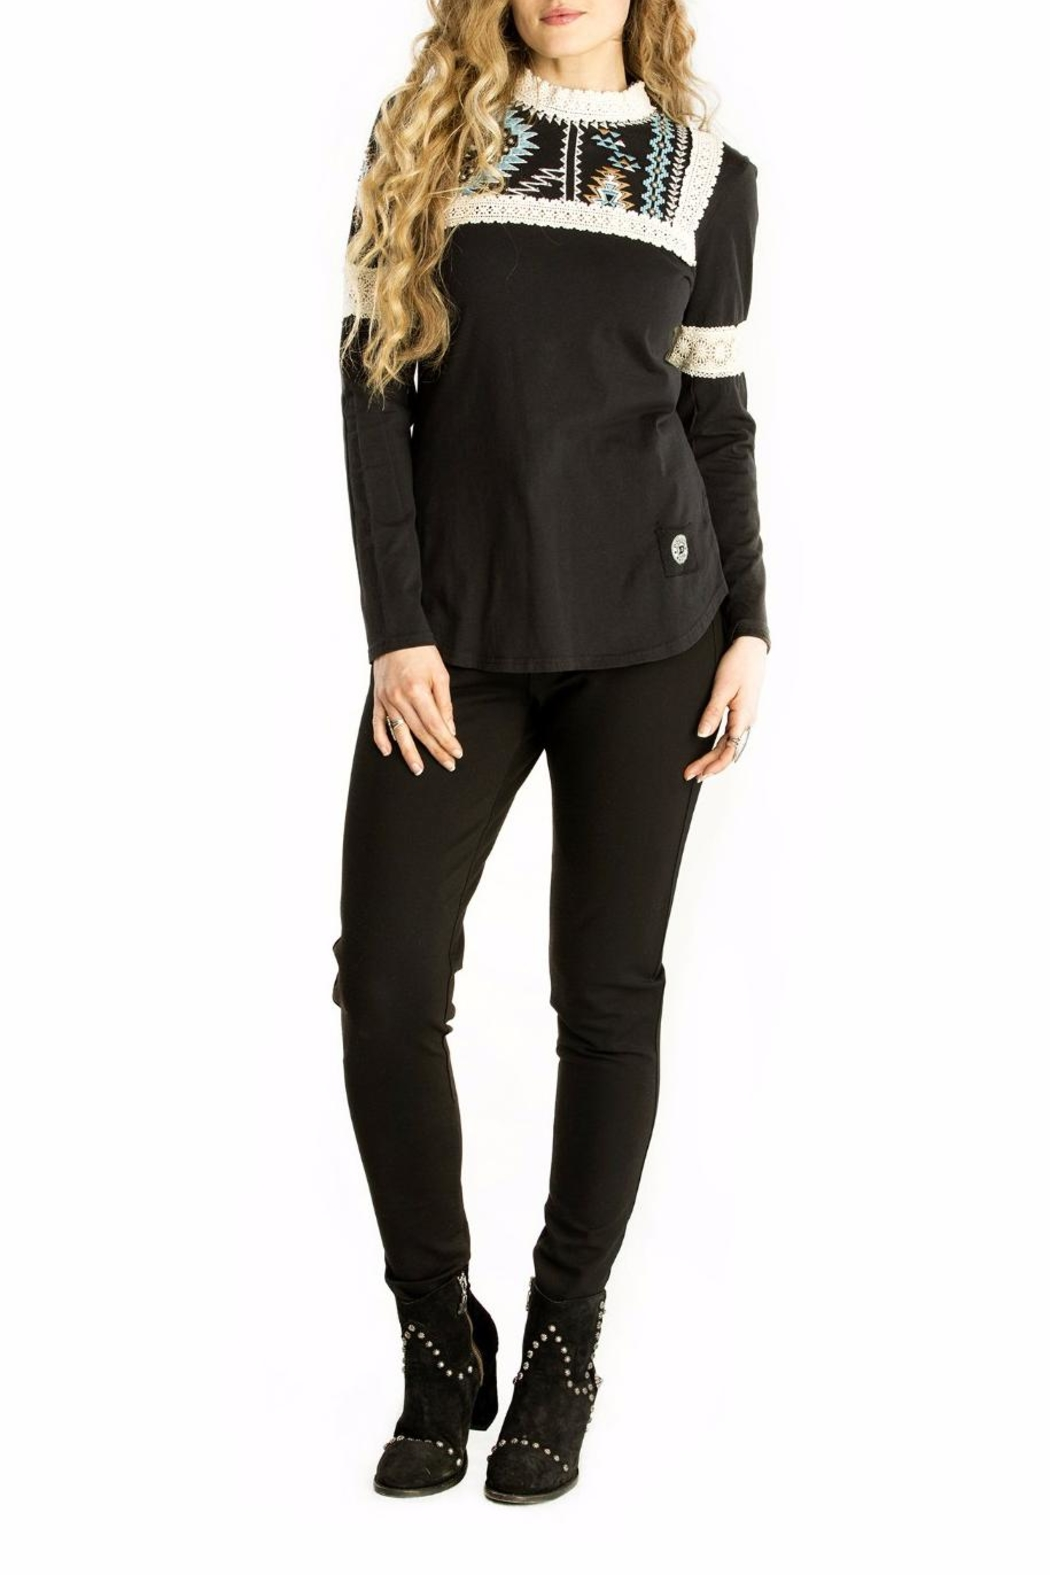 Double D Ranchwear Lace Accented Tee - Main Image